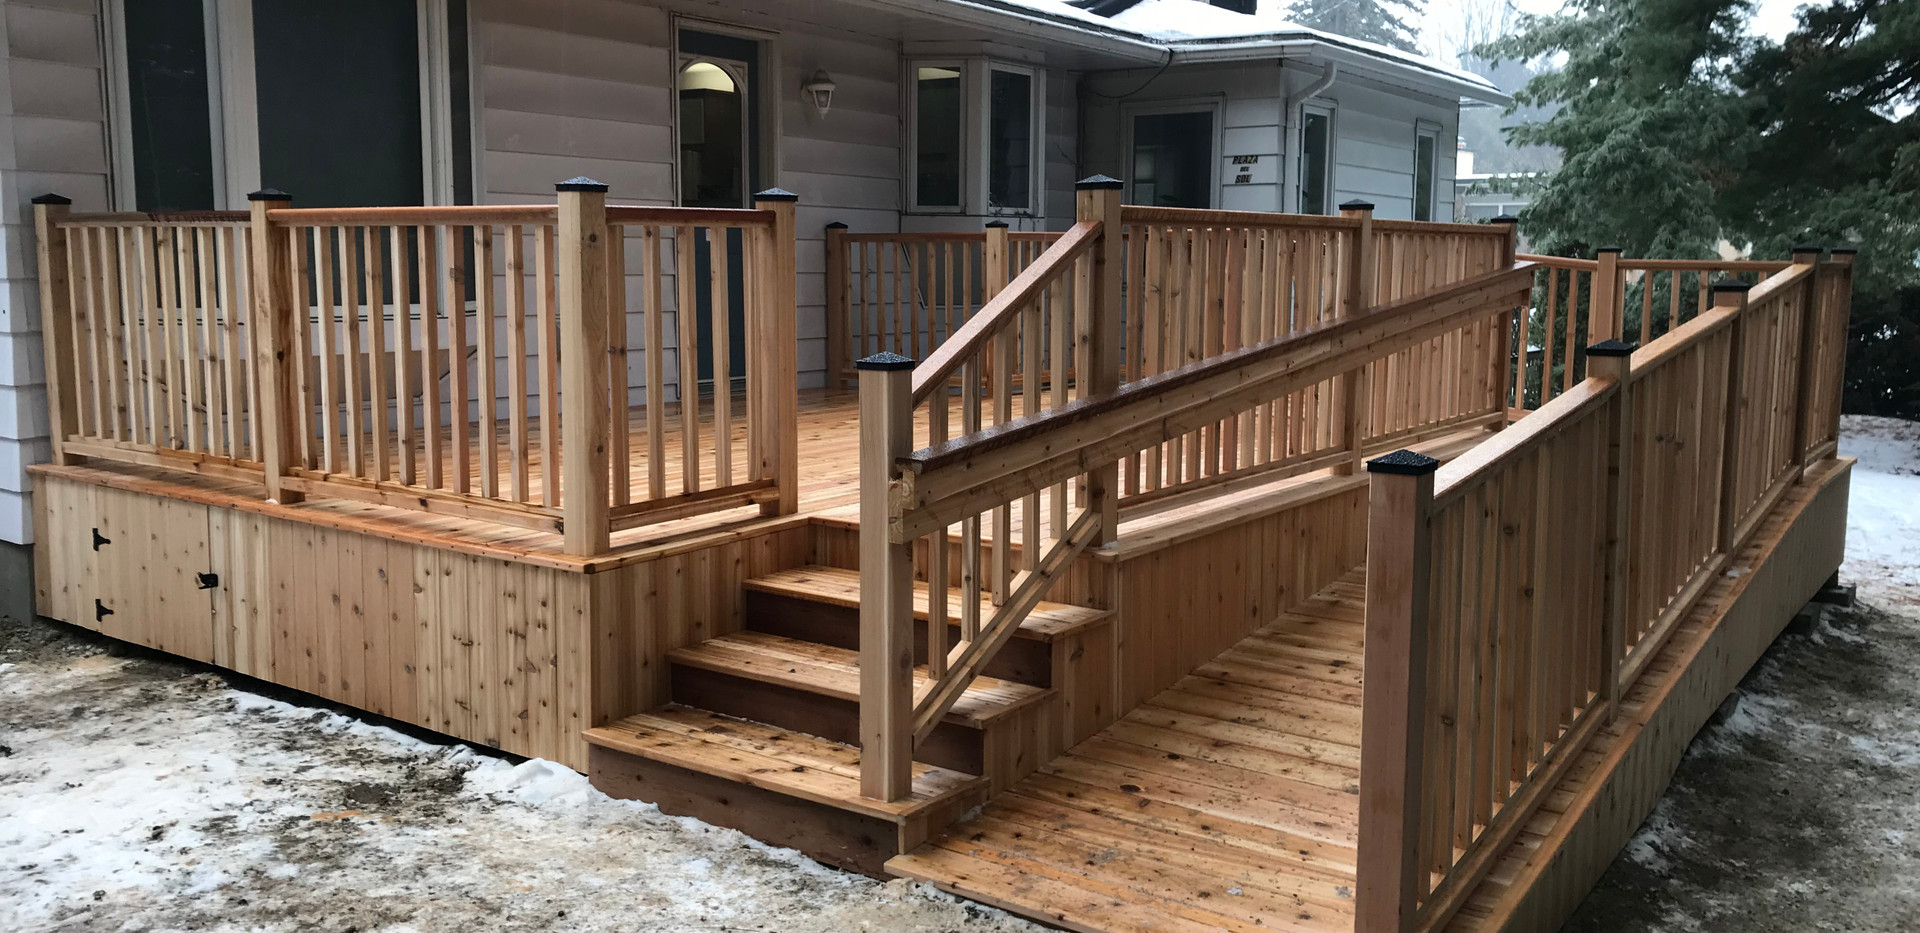 Deck with access ramp